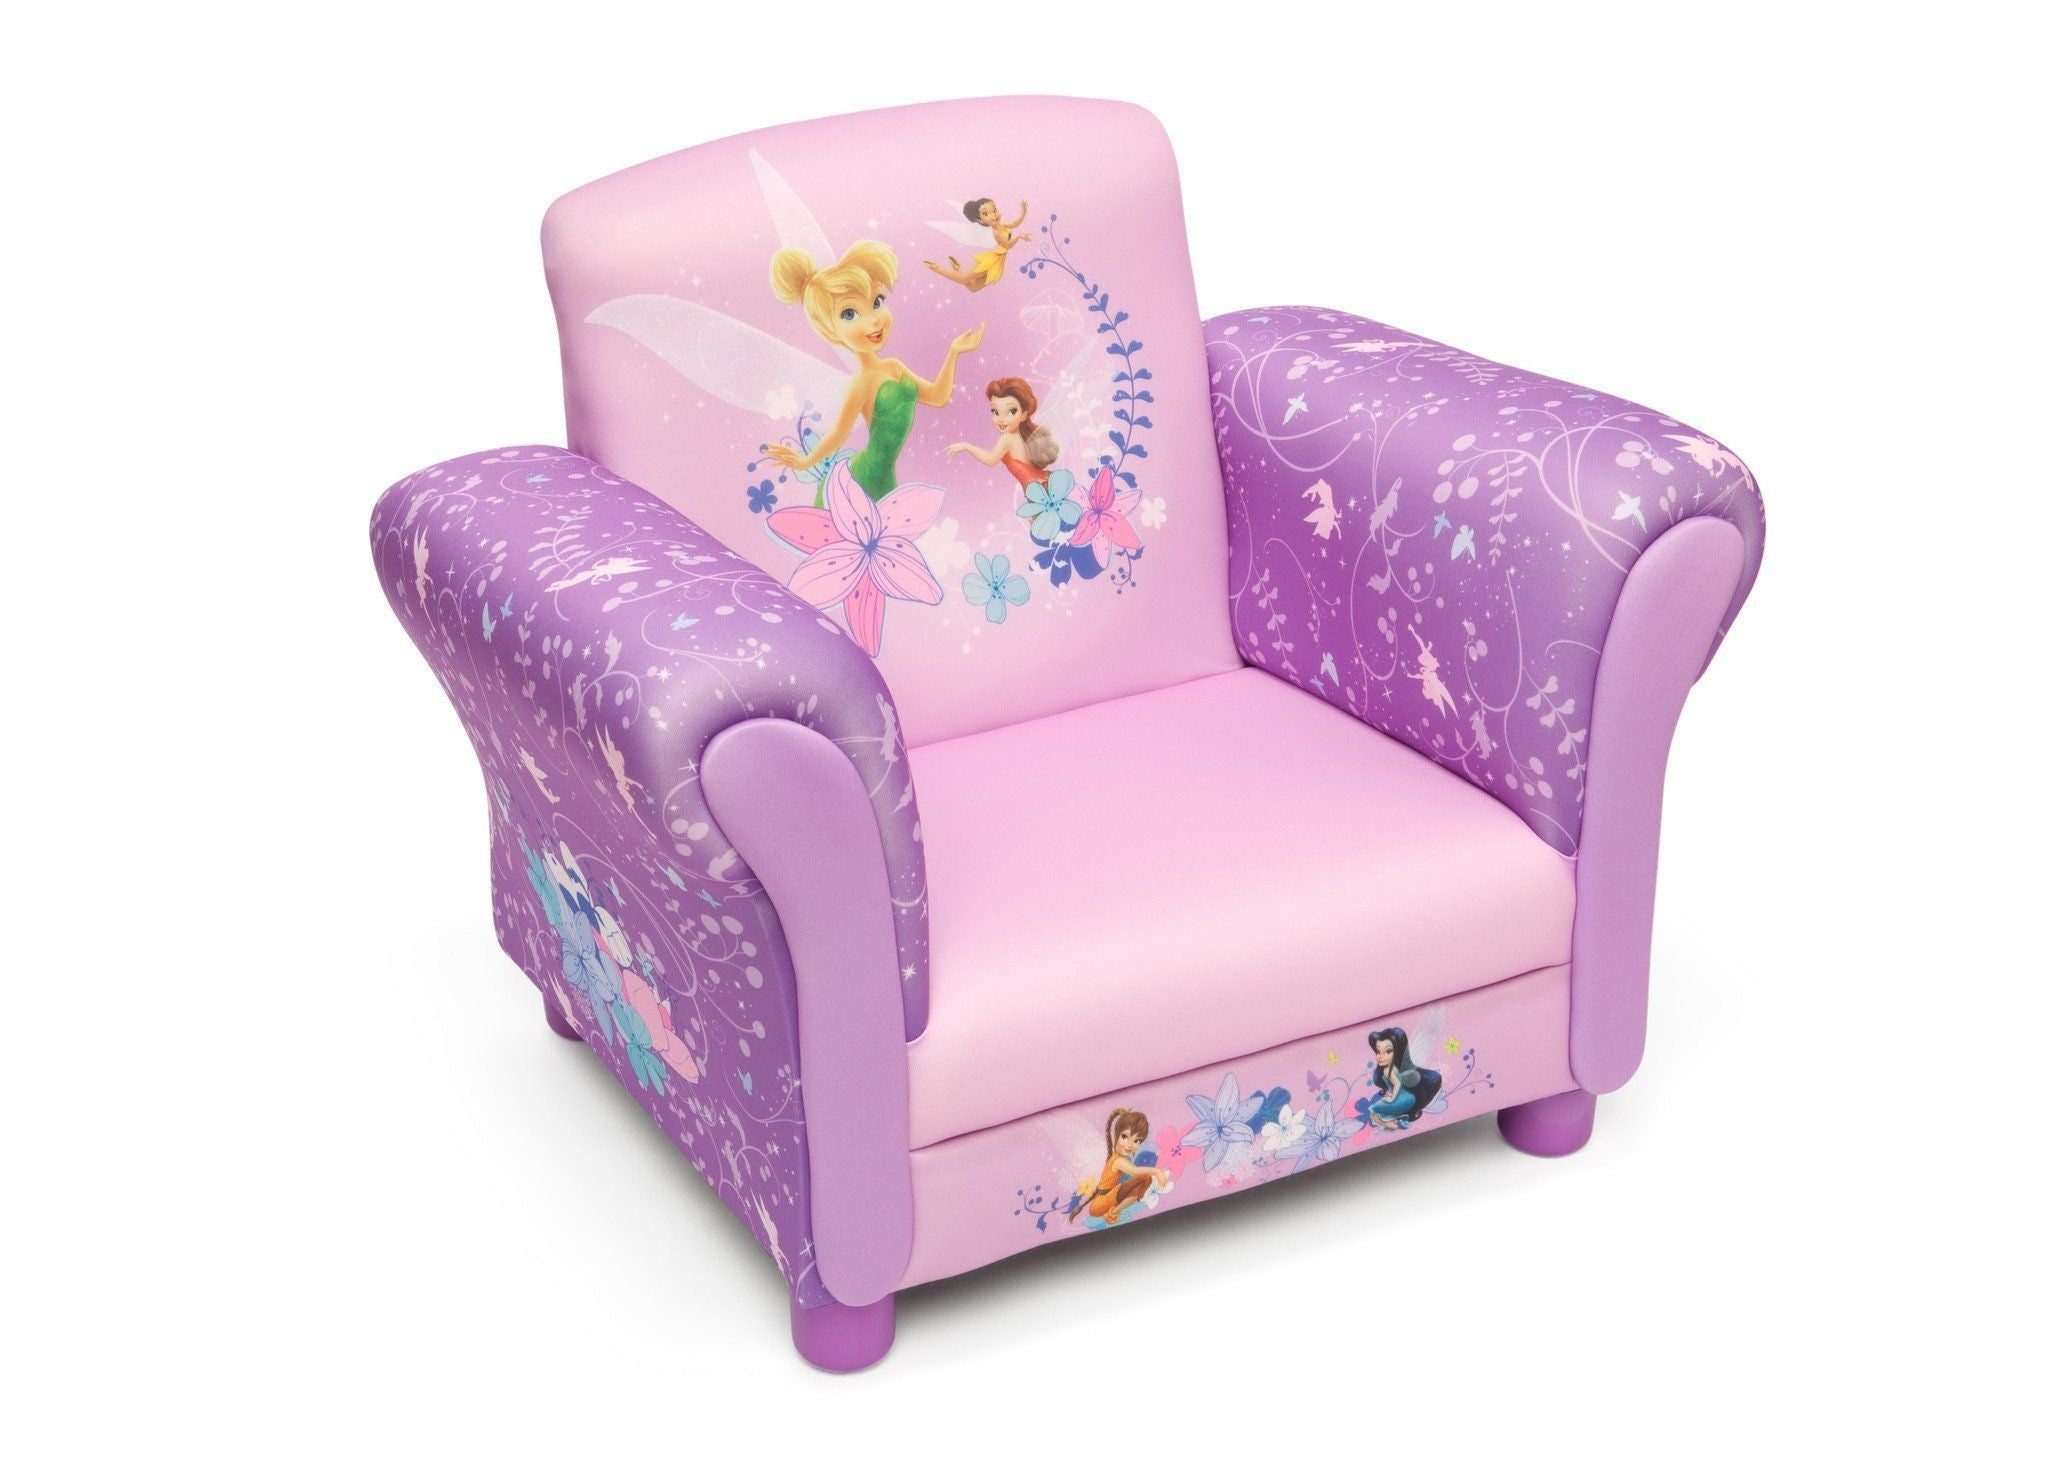 Delta Children Style 1 Fairies Upholstered Chair--OLD, Right View a1a